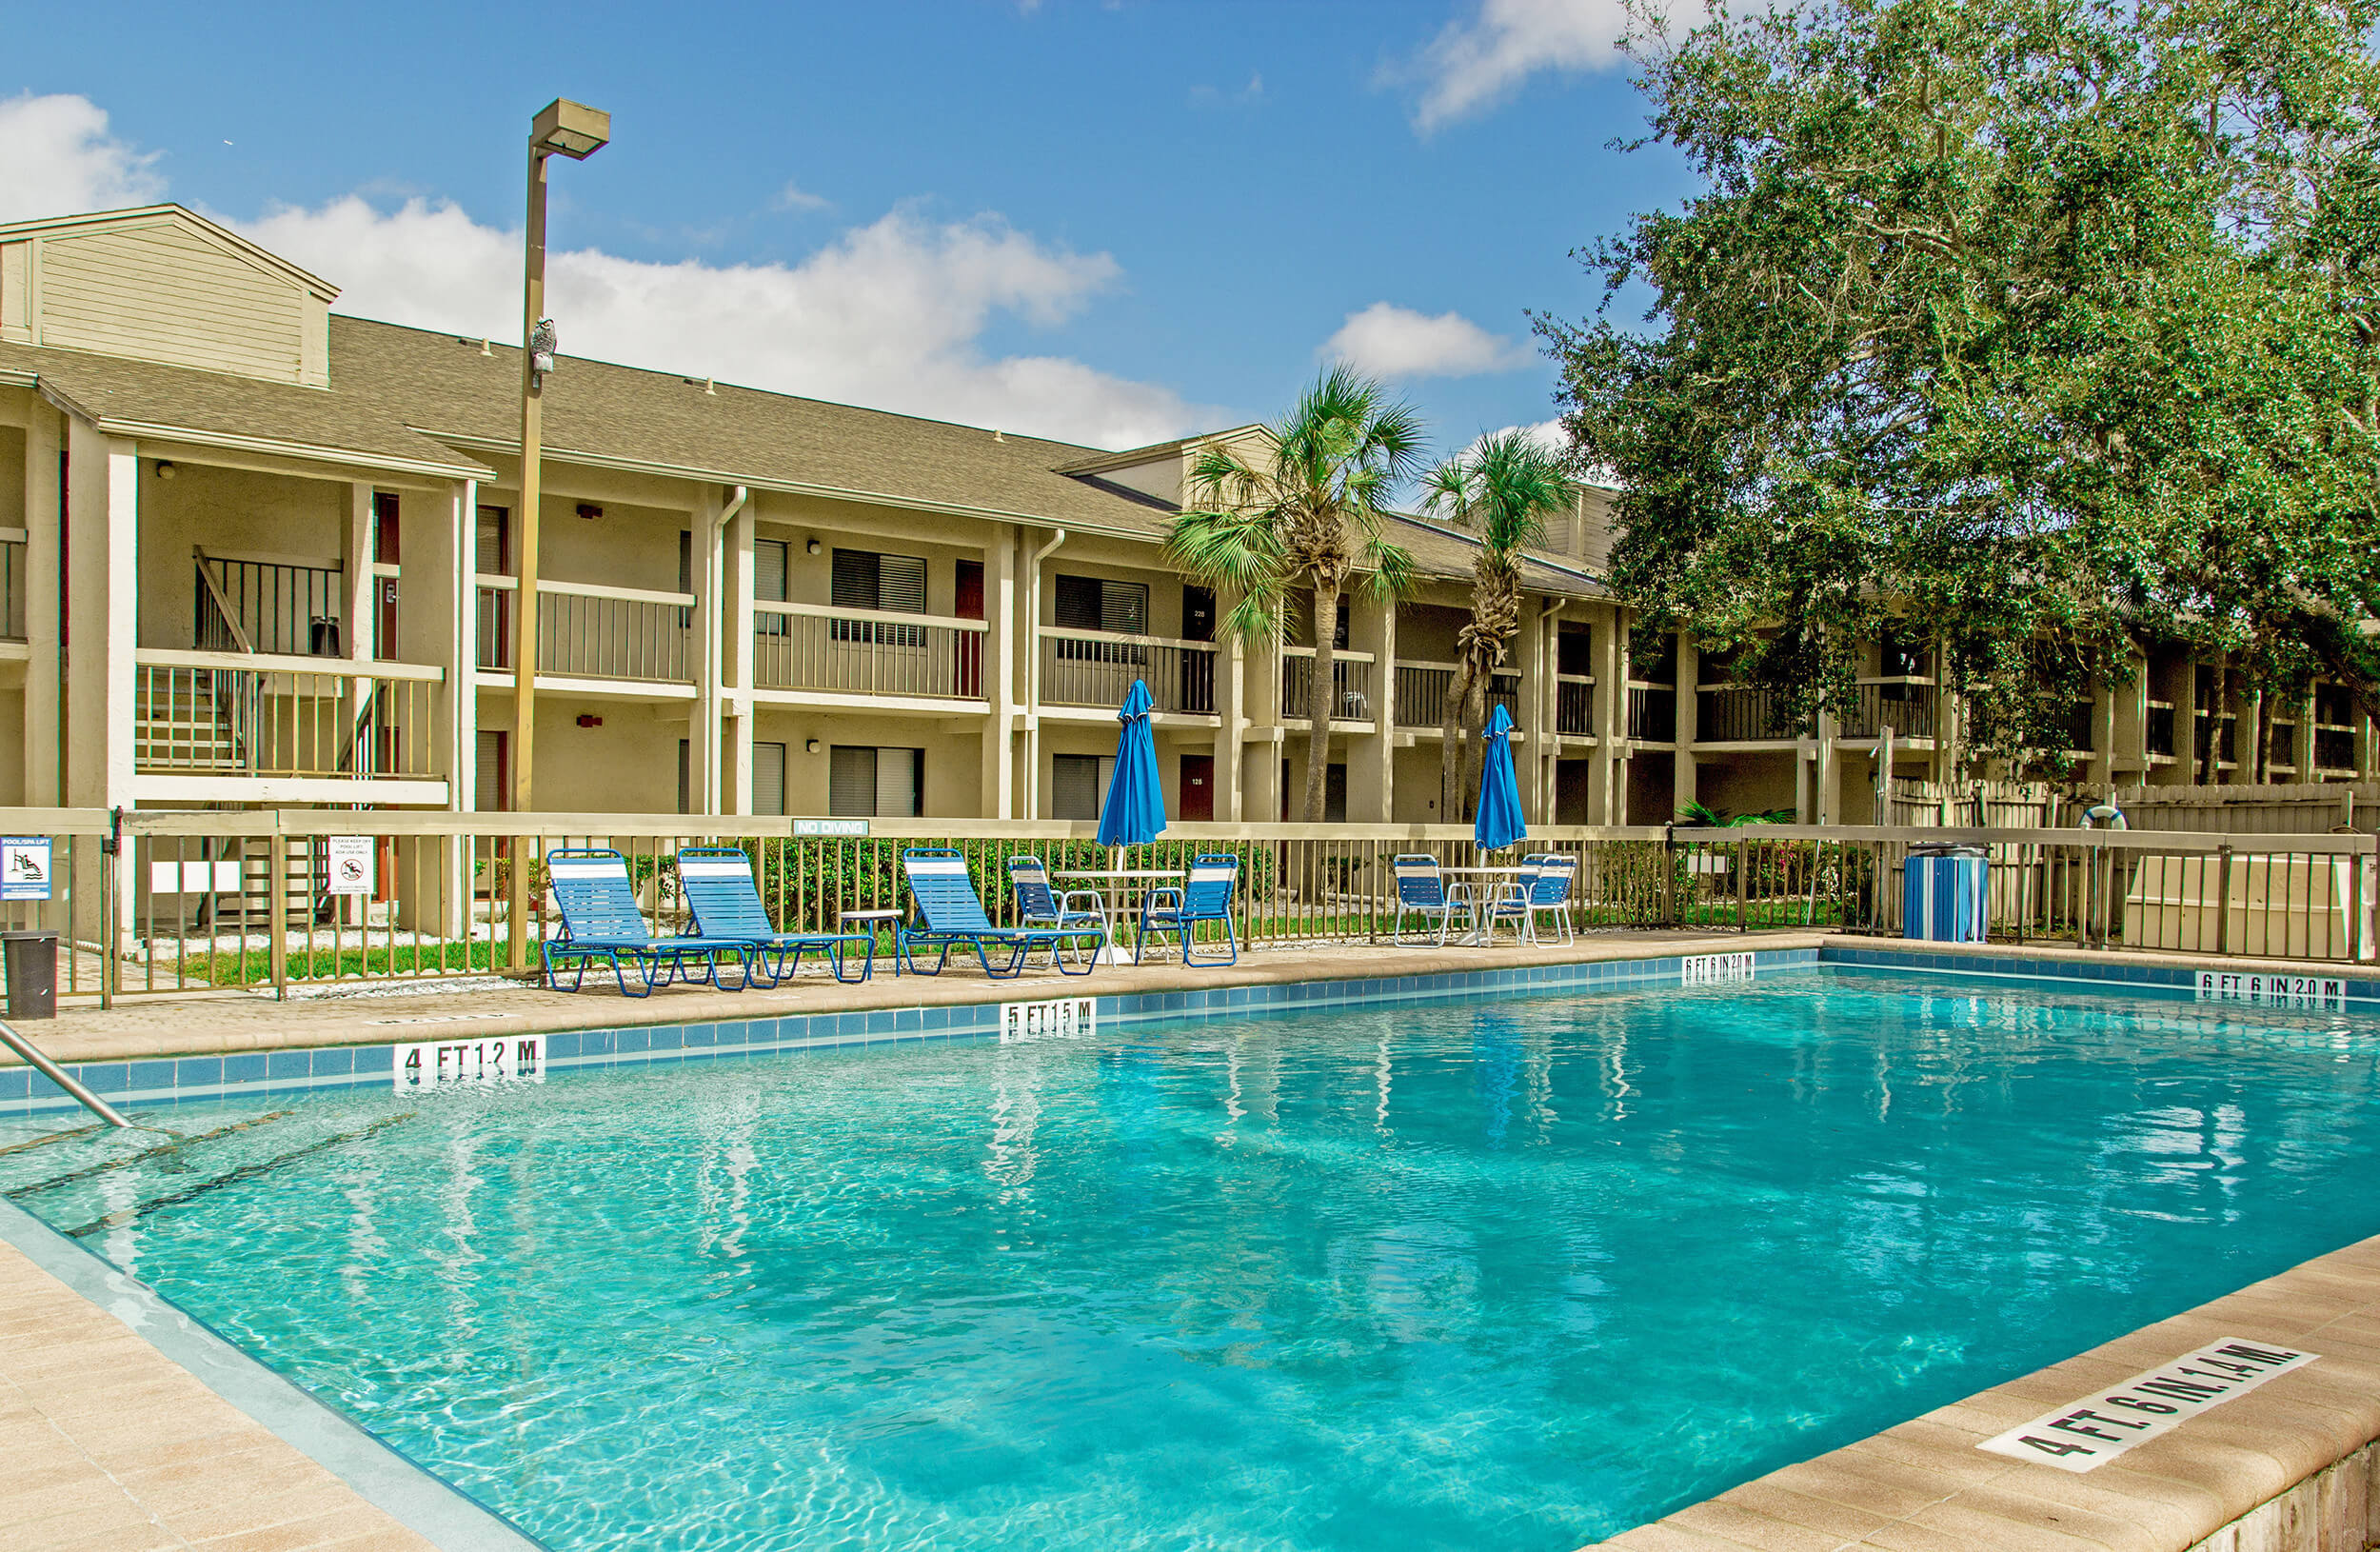 Club Orlando pool with lounge chairs, tables and umbrellas for shade | Westgate Resorts